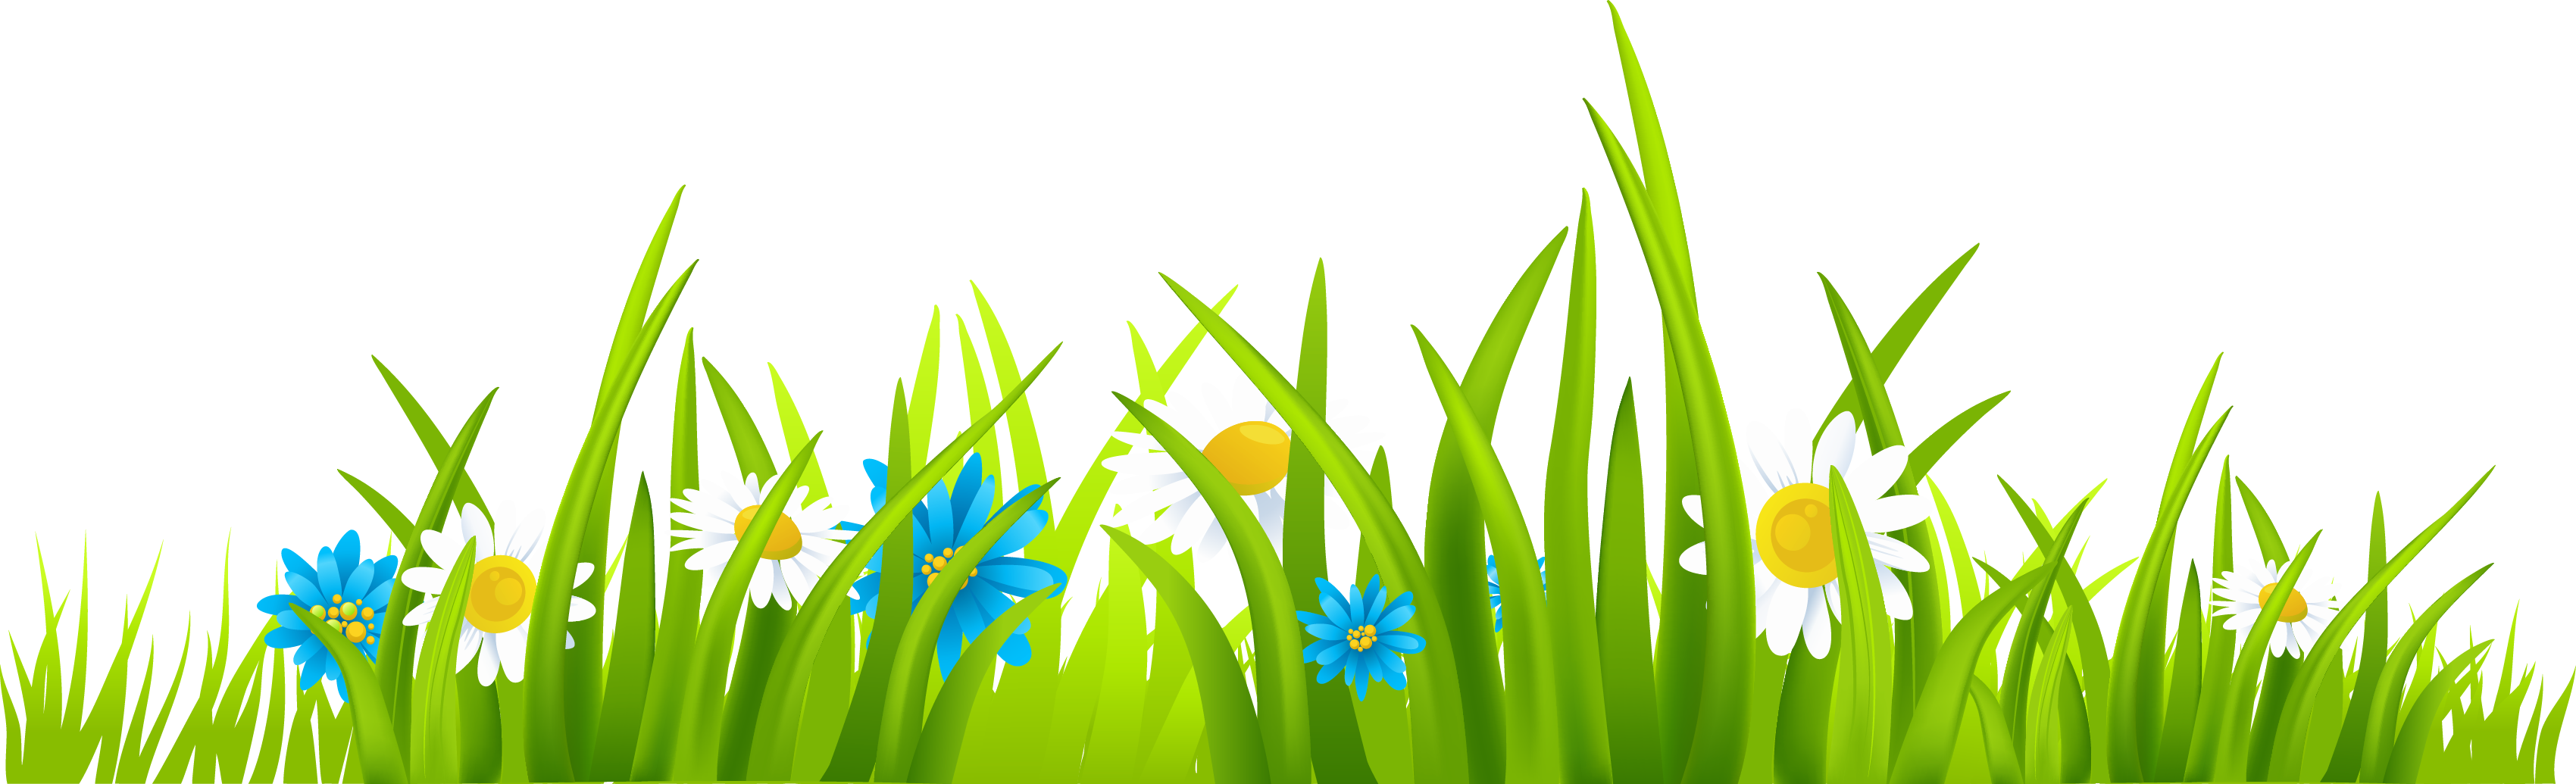 Grass clipart png. Ground with flowers picture